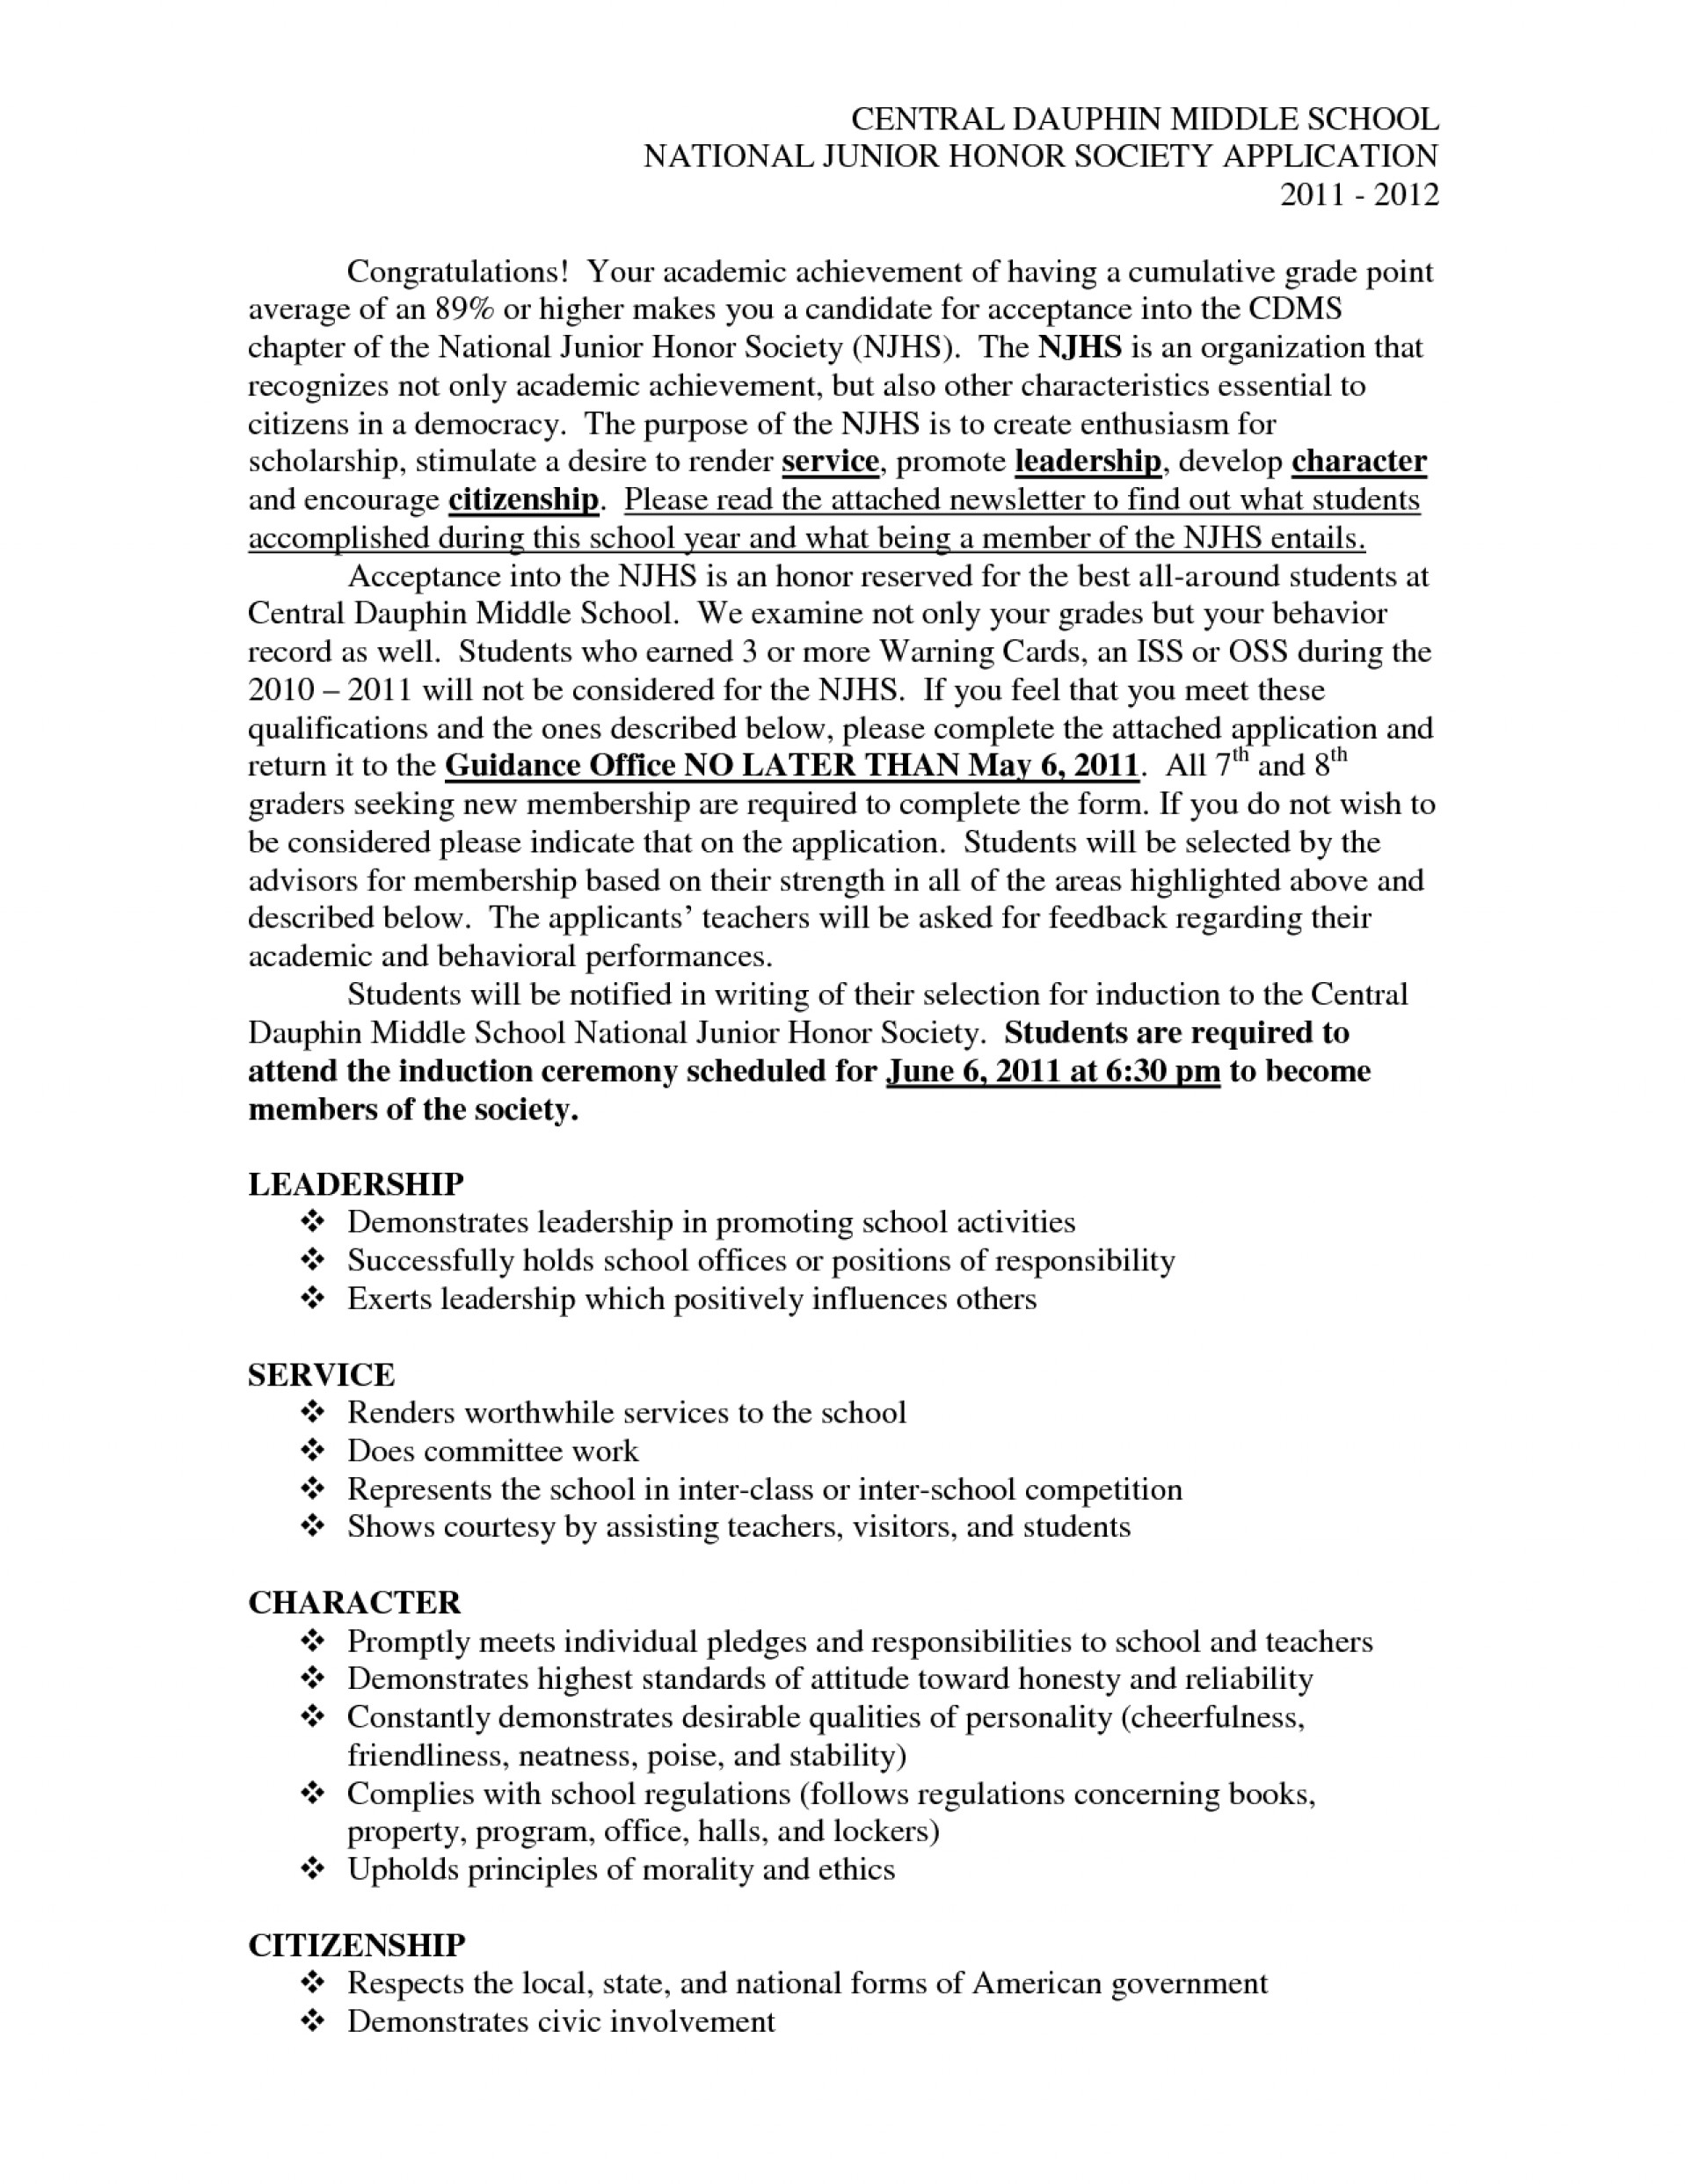 essay example national honors society writing introductions for    essay example national honors society writing introductions for honor  essays l unique titles leadership requirements